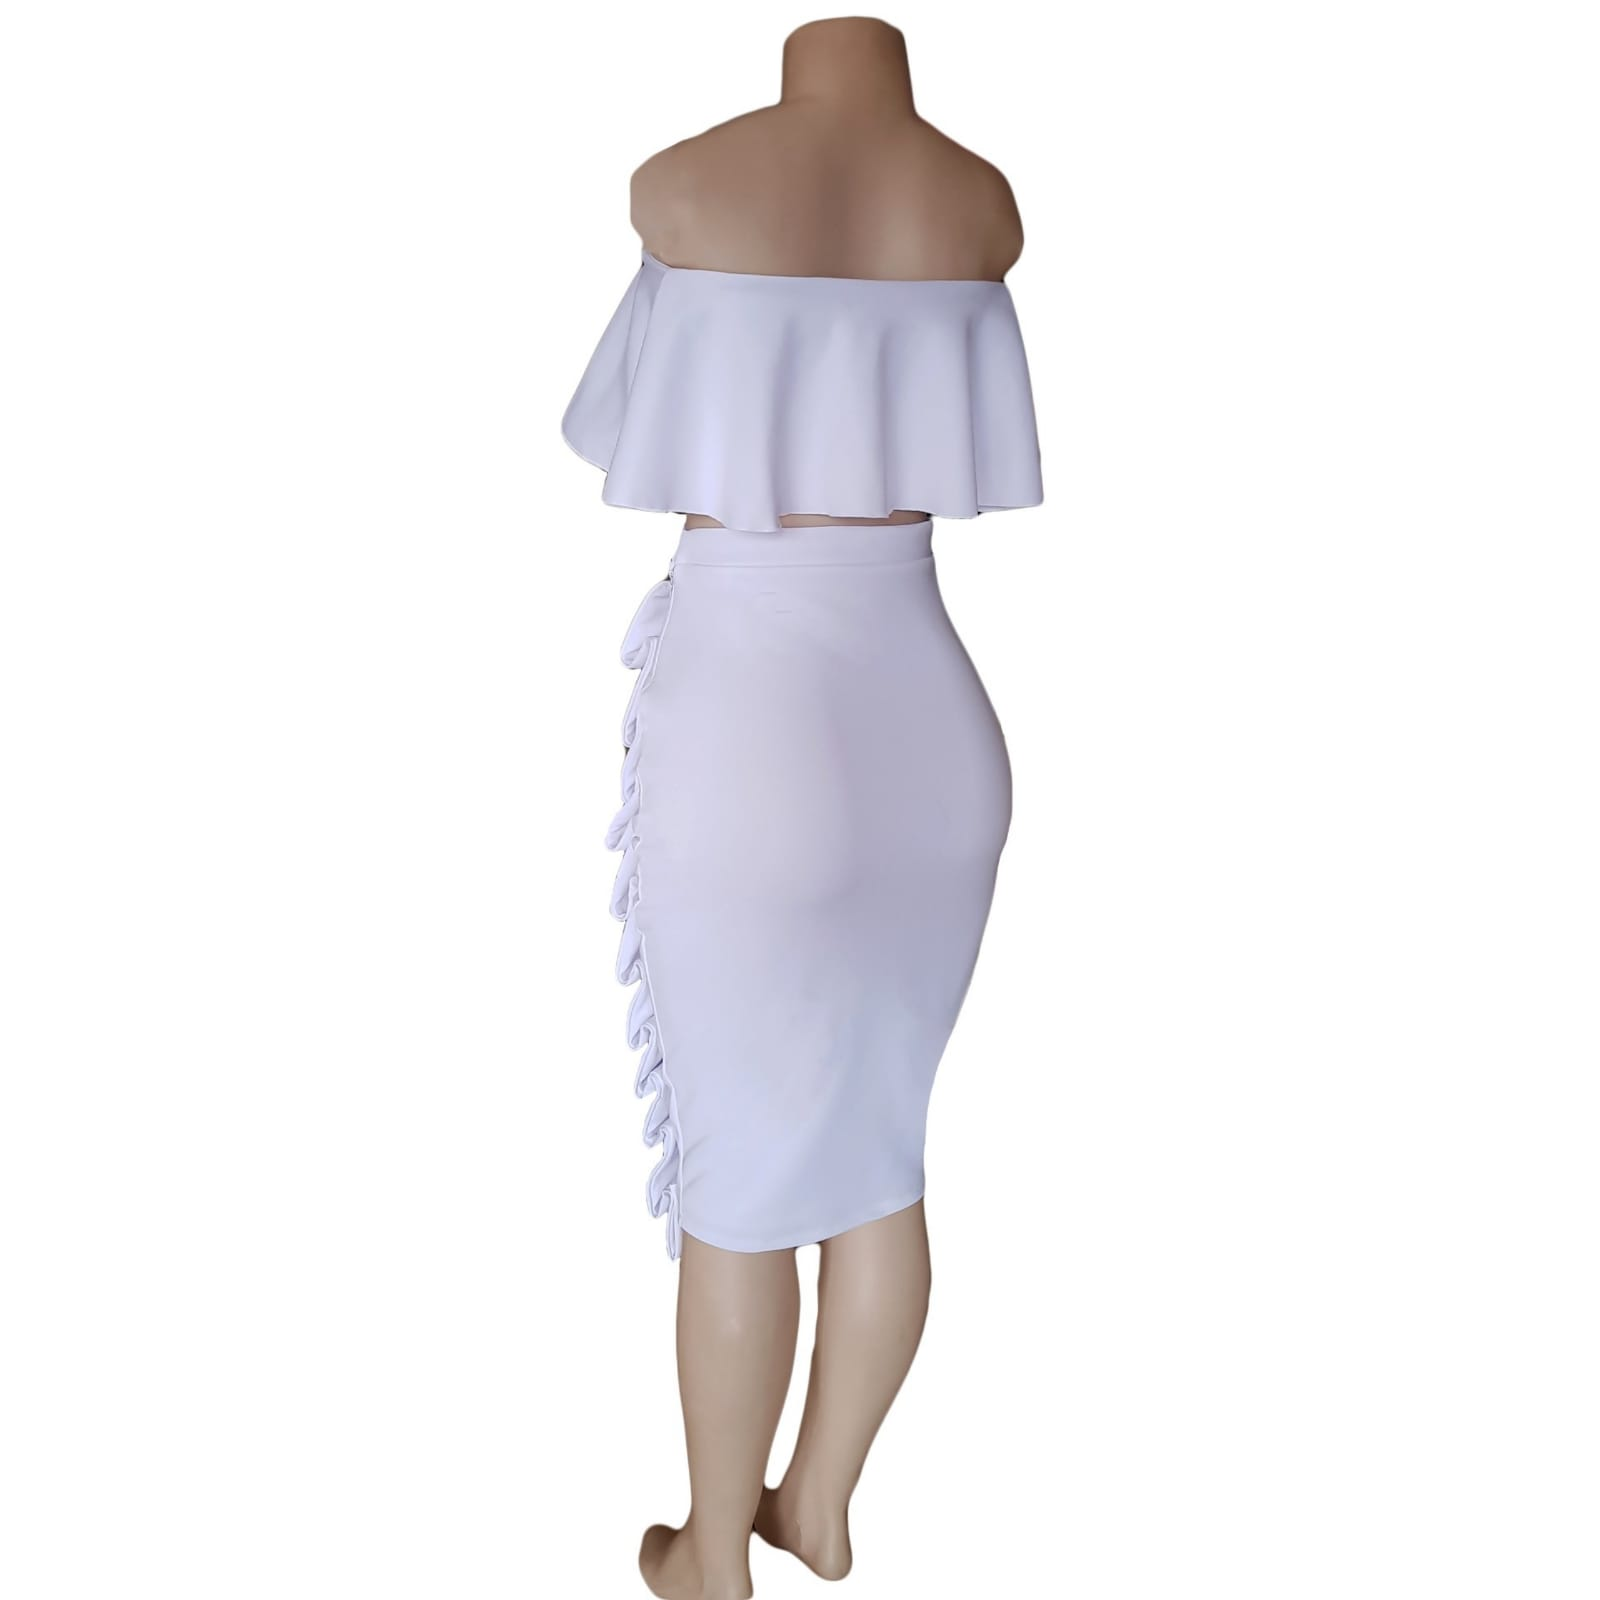 2 piece white smart casual wear 4 2 piece white smart casual wear. Crop boob tube frilled top with tight fitting below the knee skirt detailed with folds.